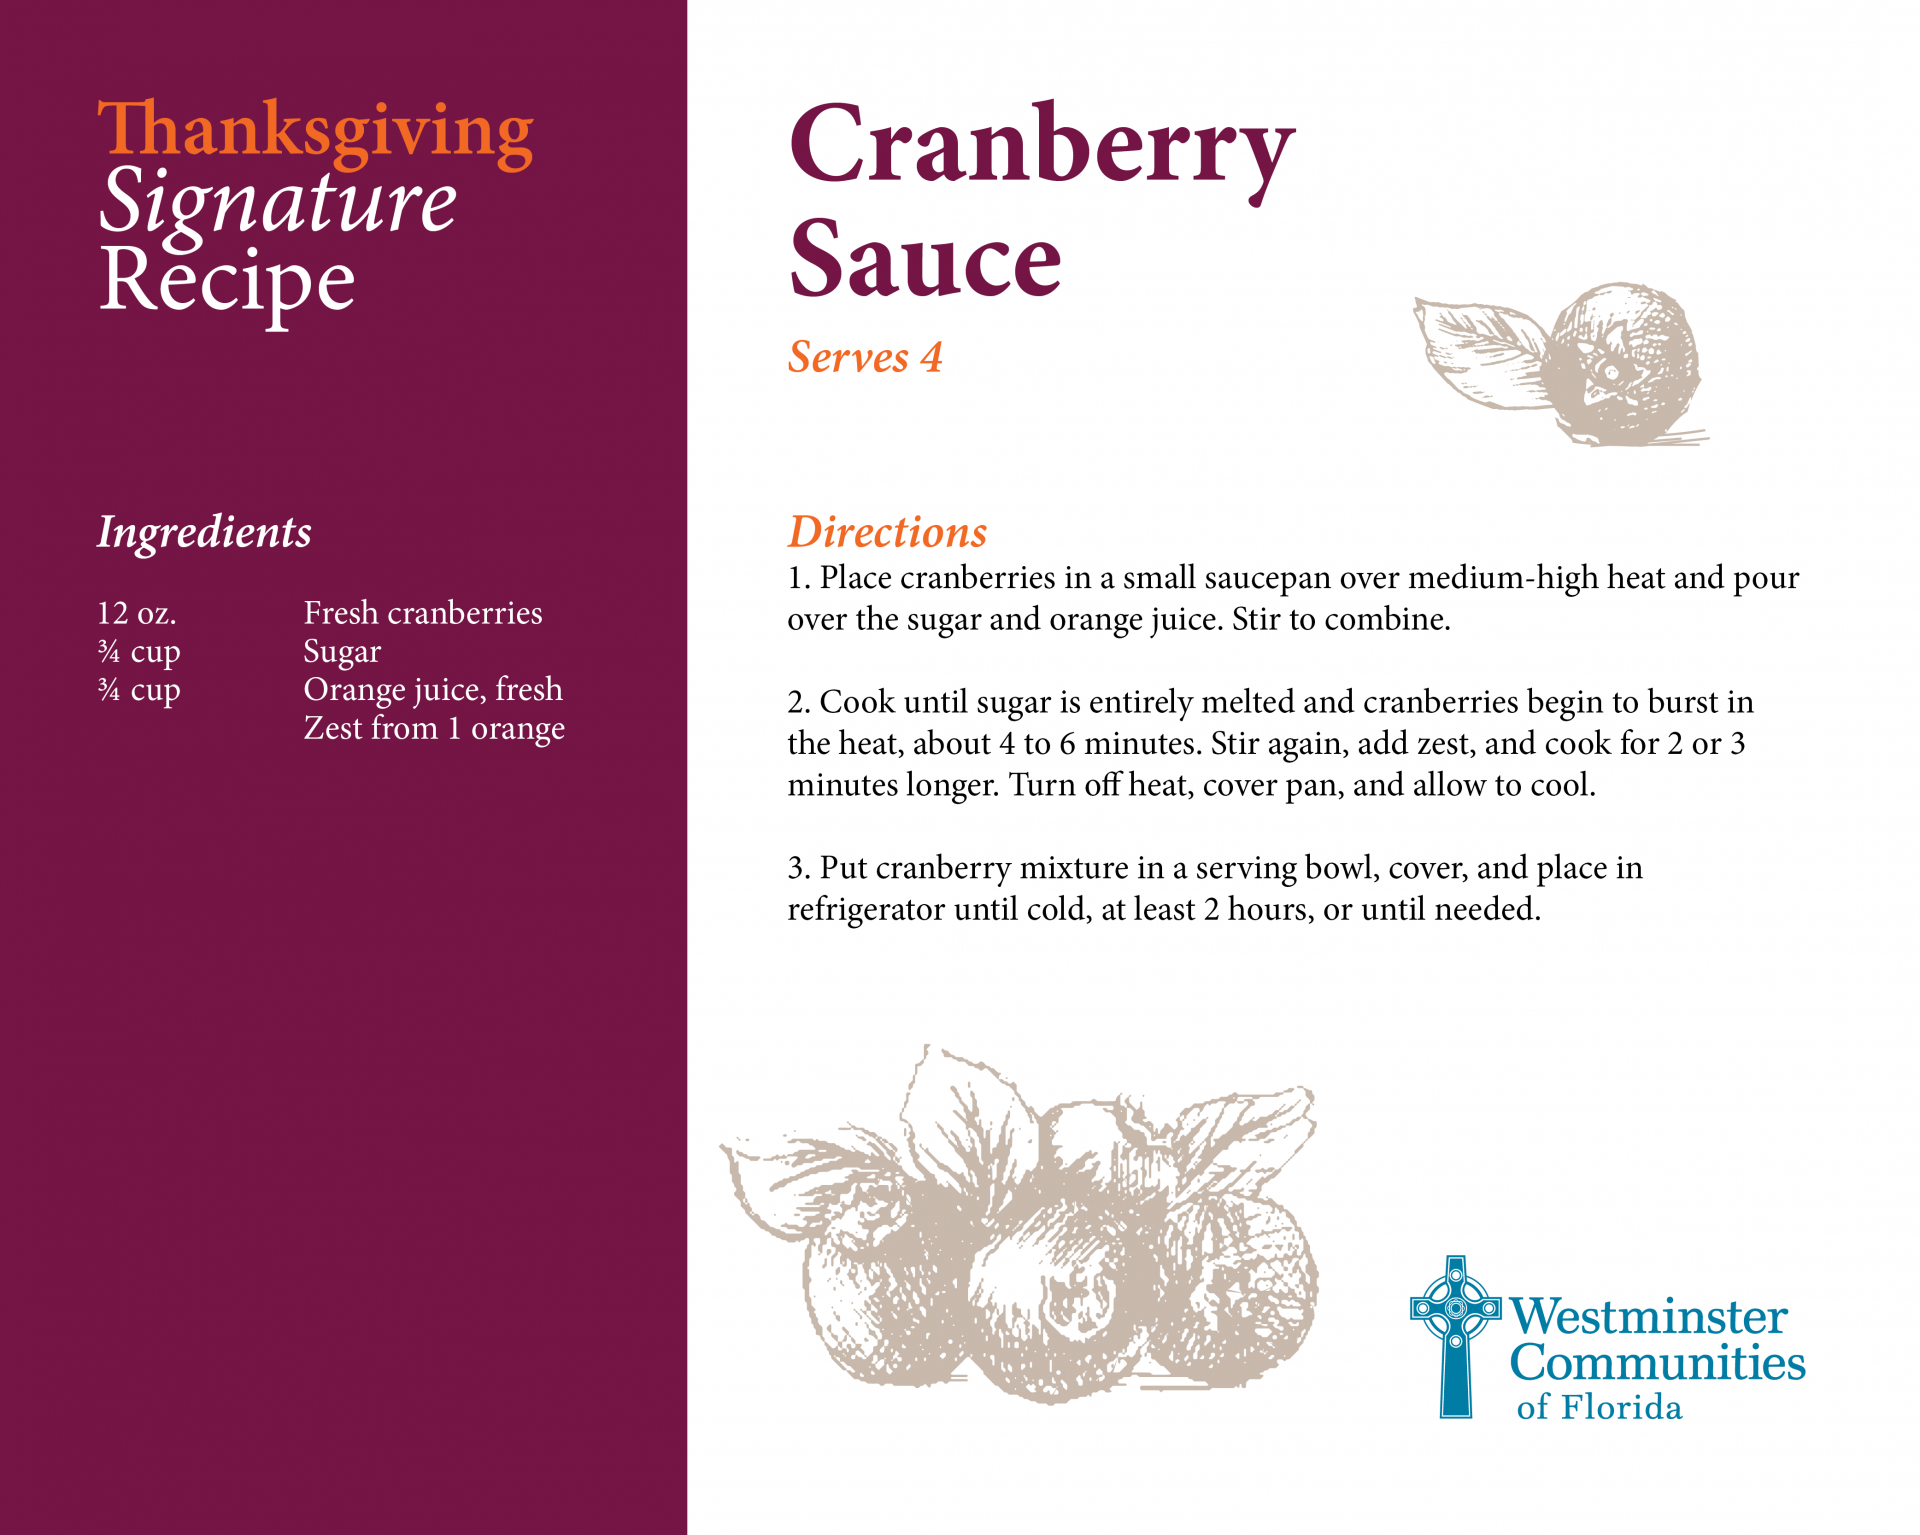 Signature Recipe for Cranberry Sauce